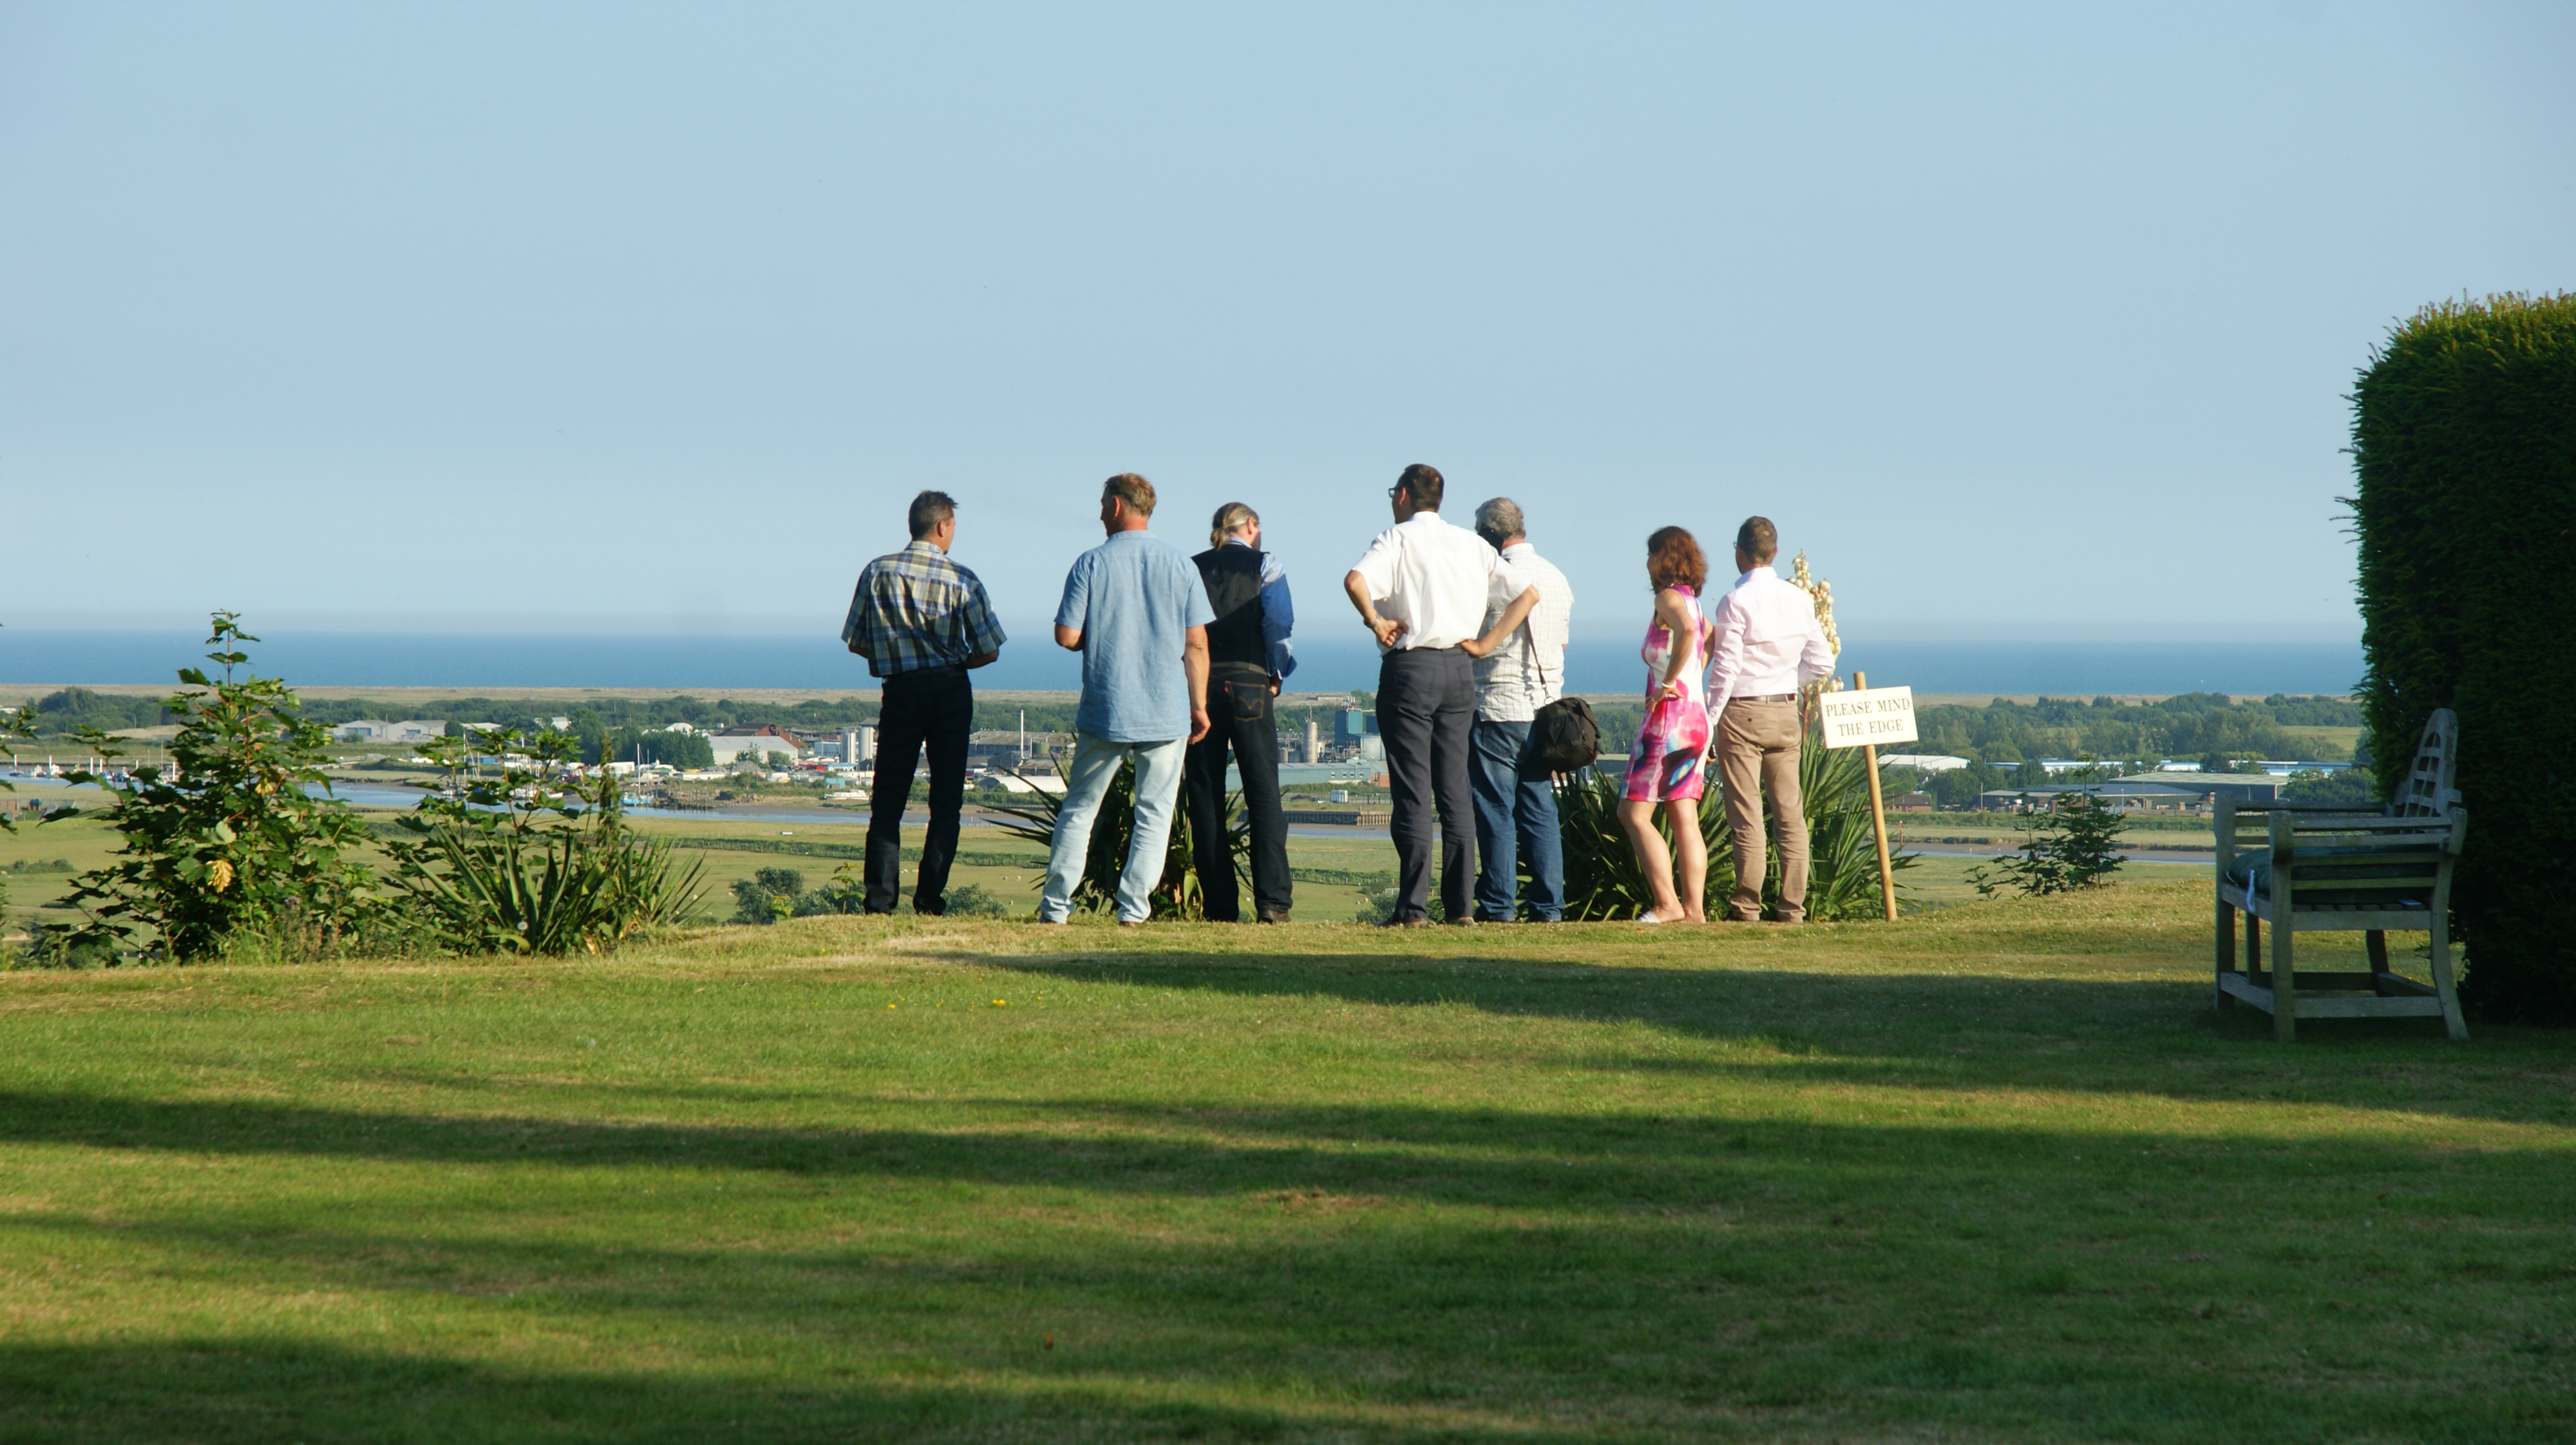 Family gathered at edge of garden appreciation the extensive views